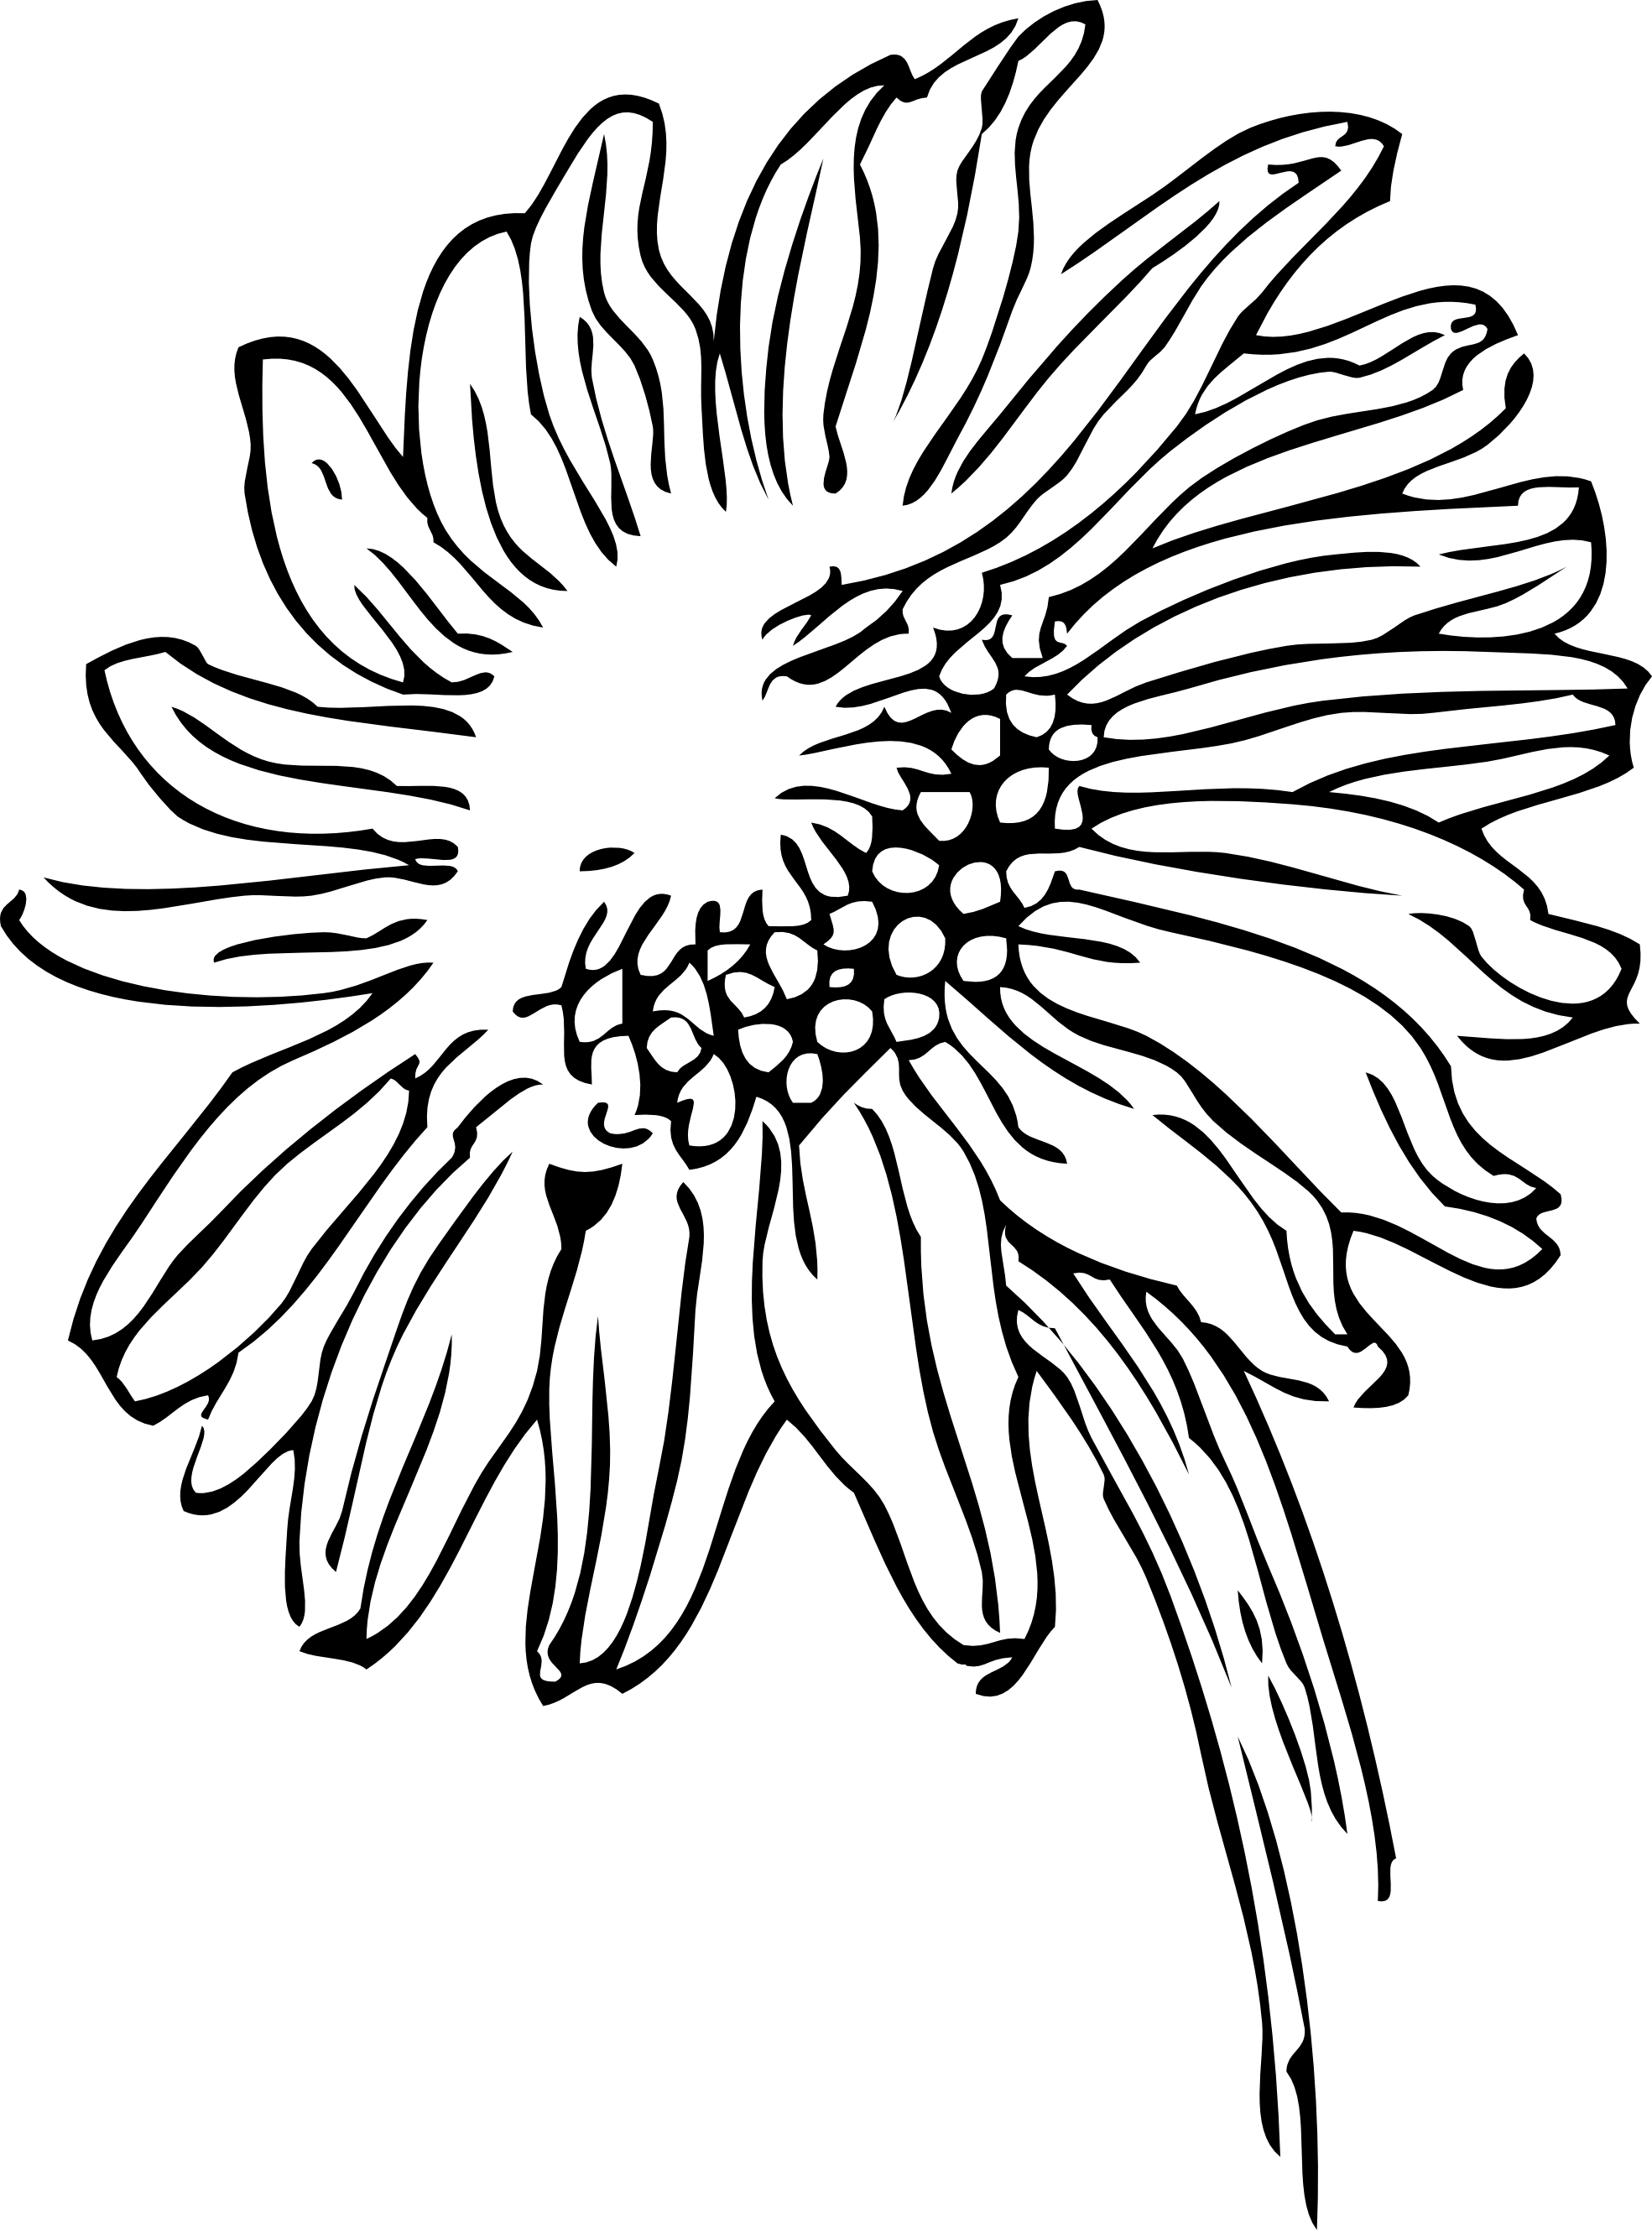 Black And White Sunflower Stencil